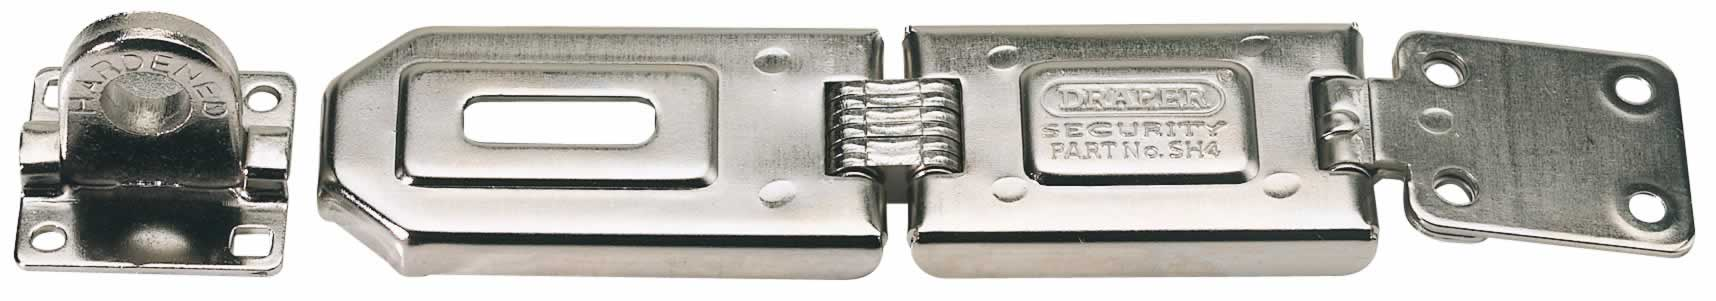 160MM HEAVY DUTY SINGLE HINGE STEEL HASP AND STAPLE WITH FIXINGS   (AHA)n